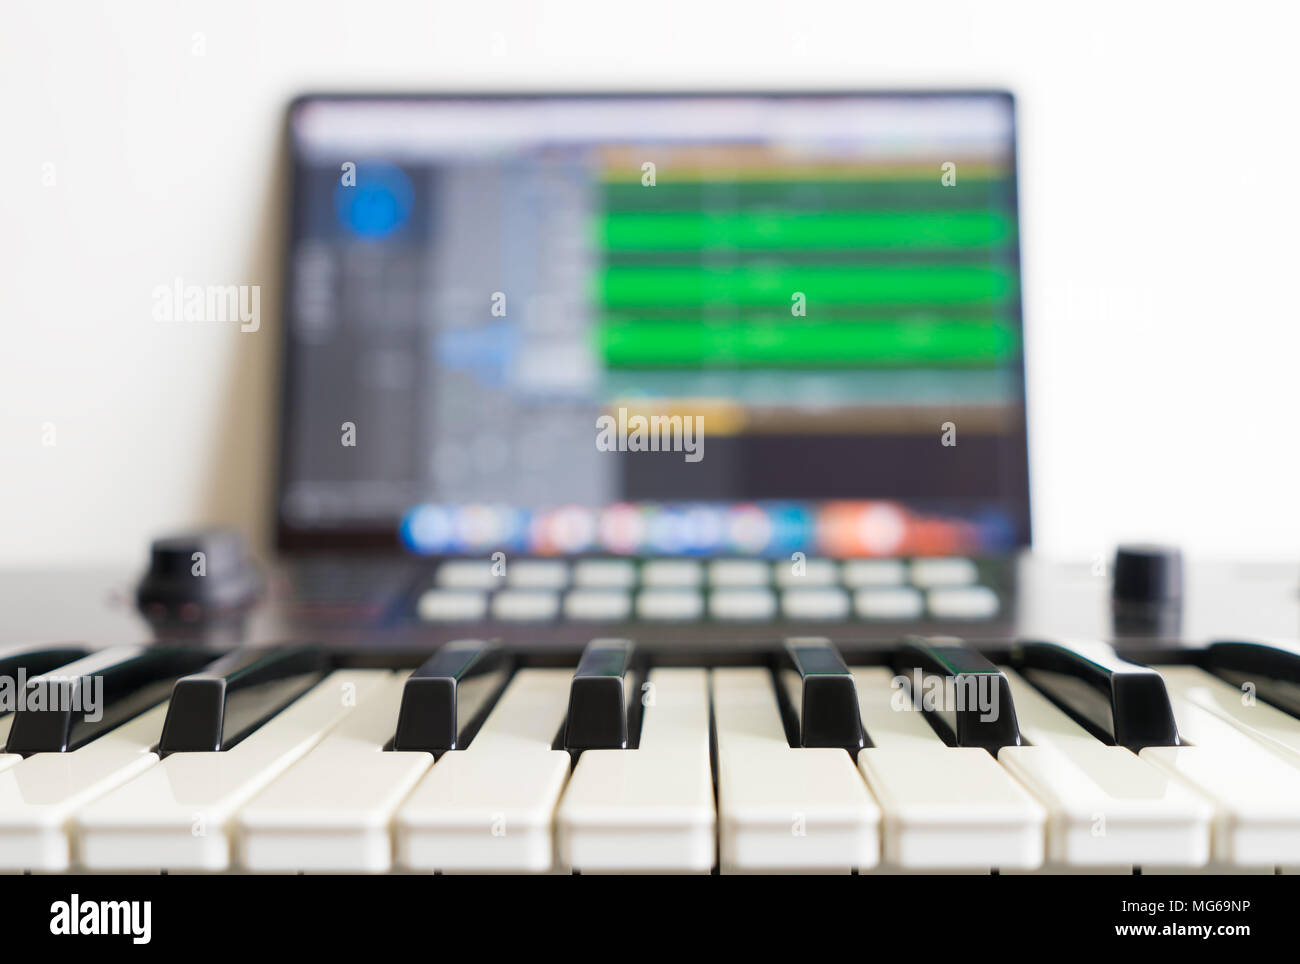 Working on Music Application with Music Keyboard - Stock Image